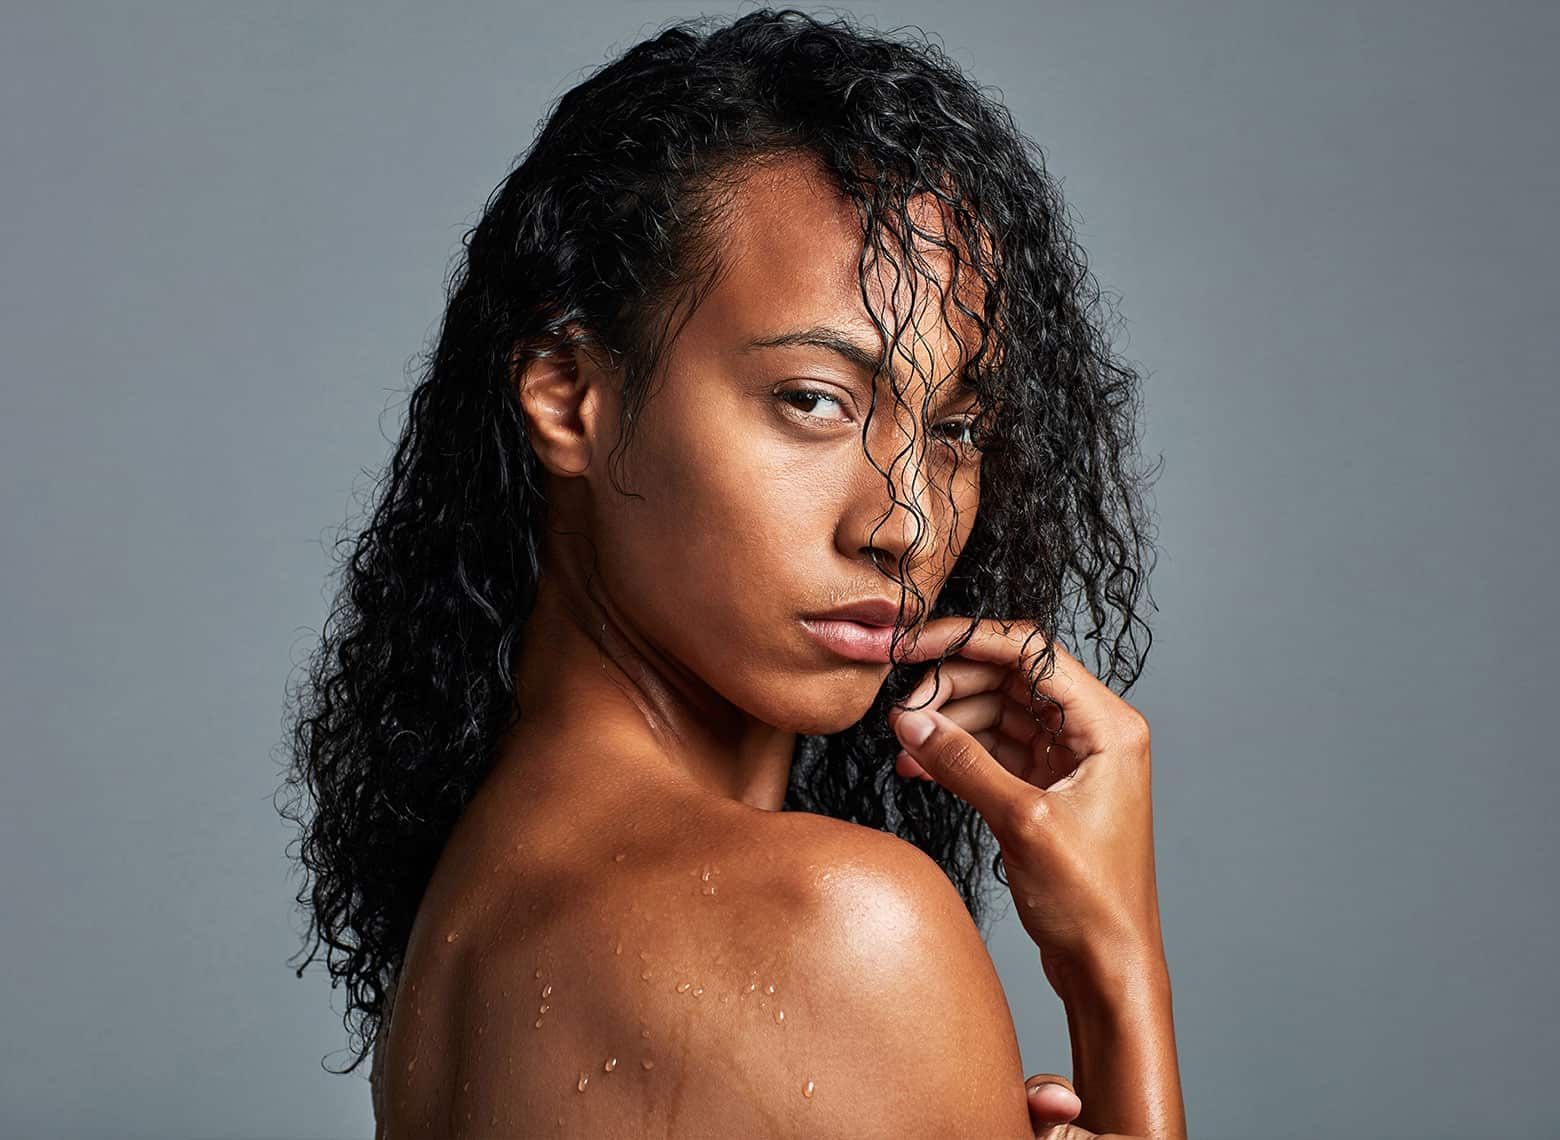 woman with wet look hair